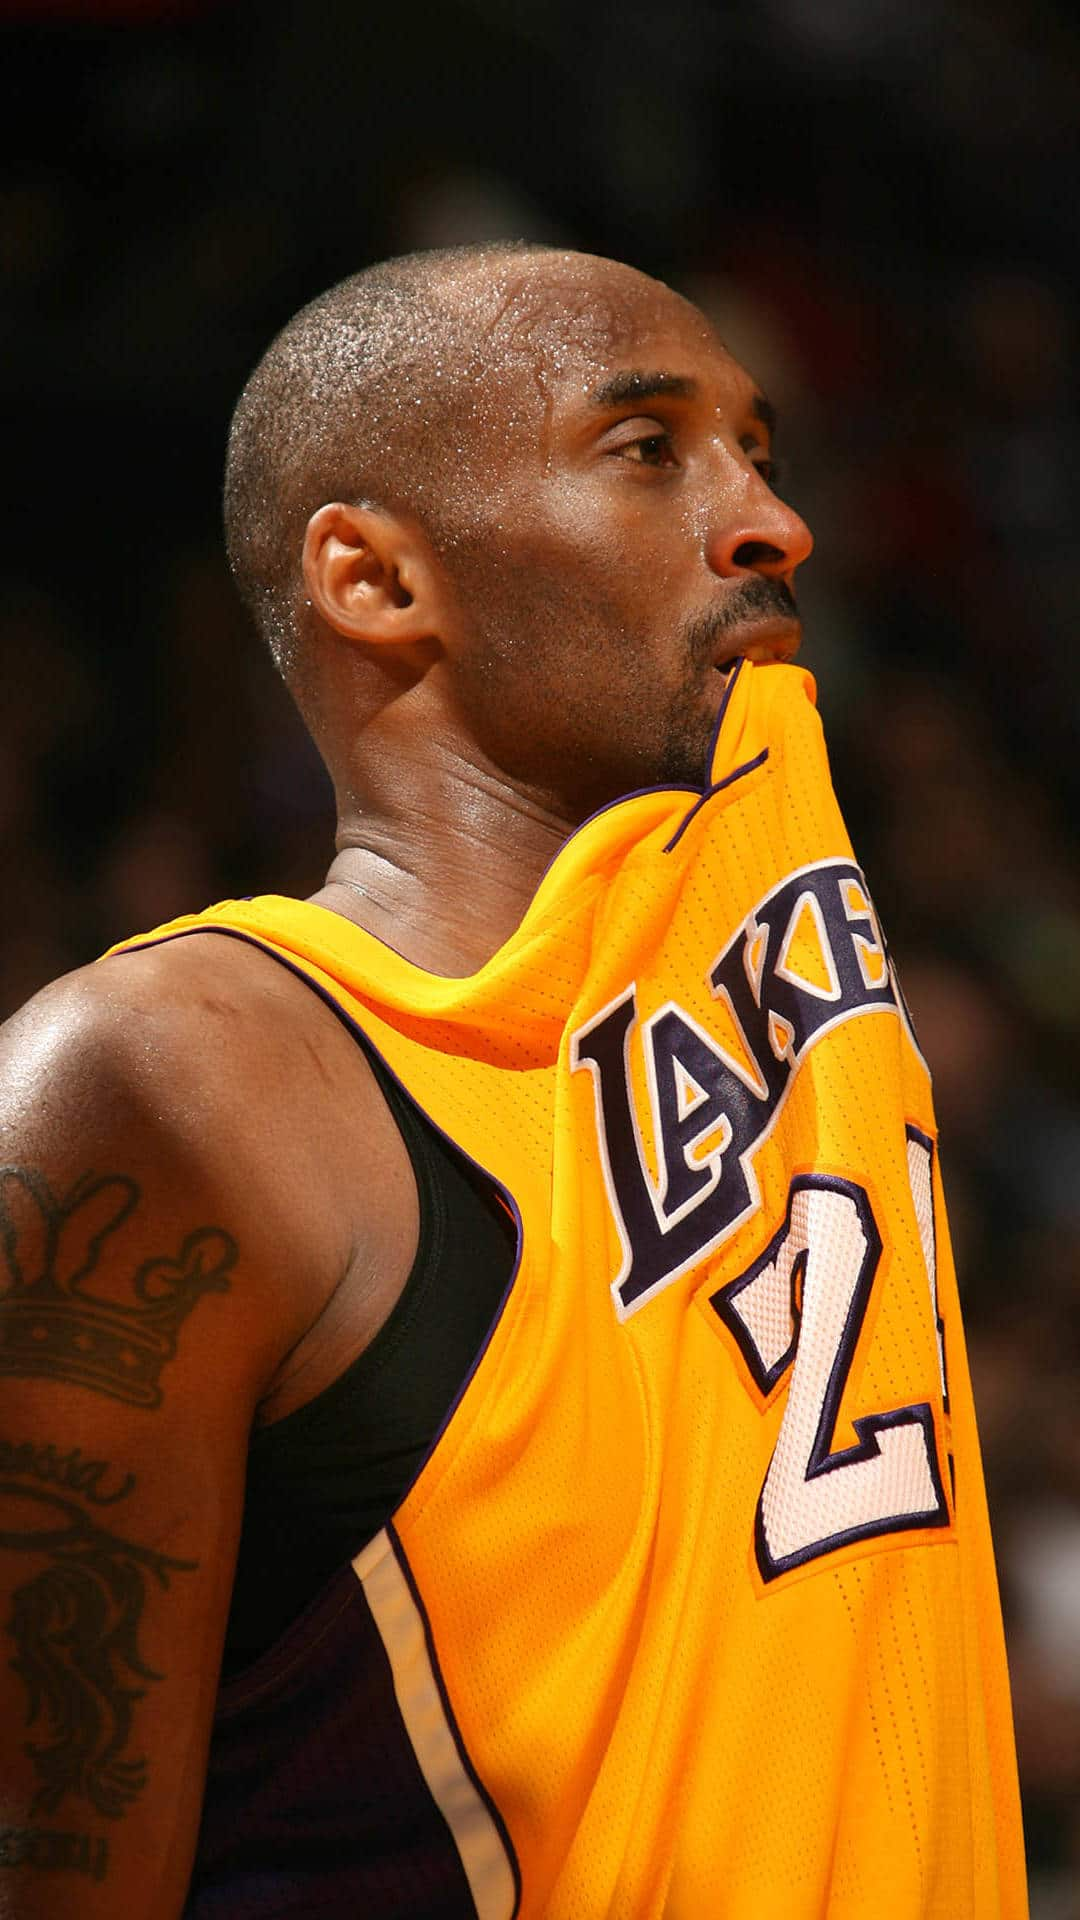 kobe bryant wallpaper 2016 - photo #29